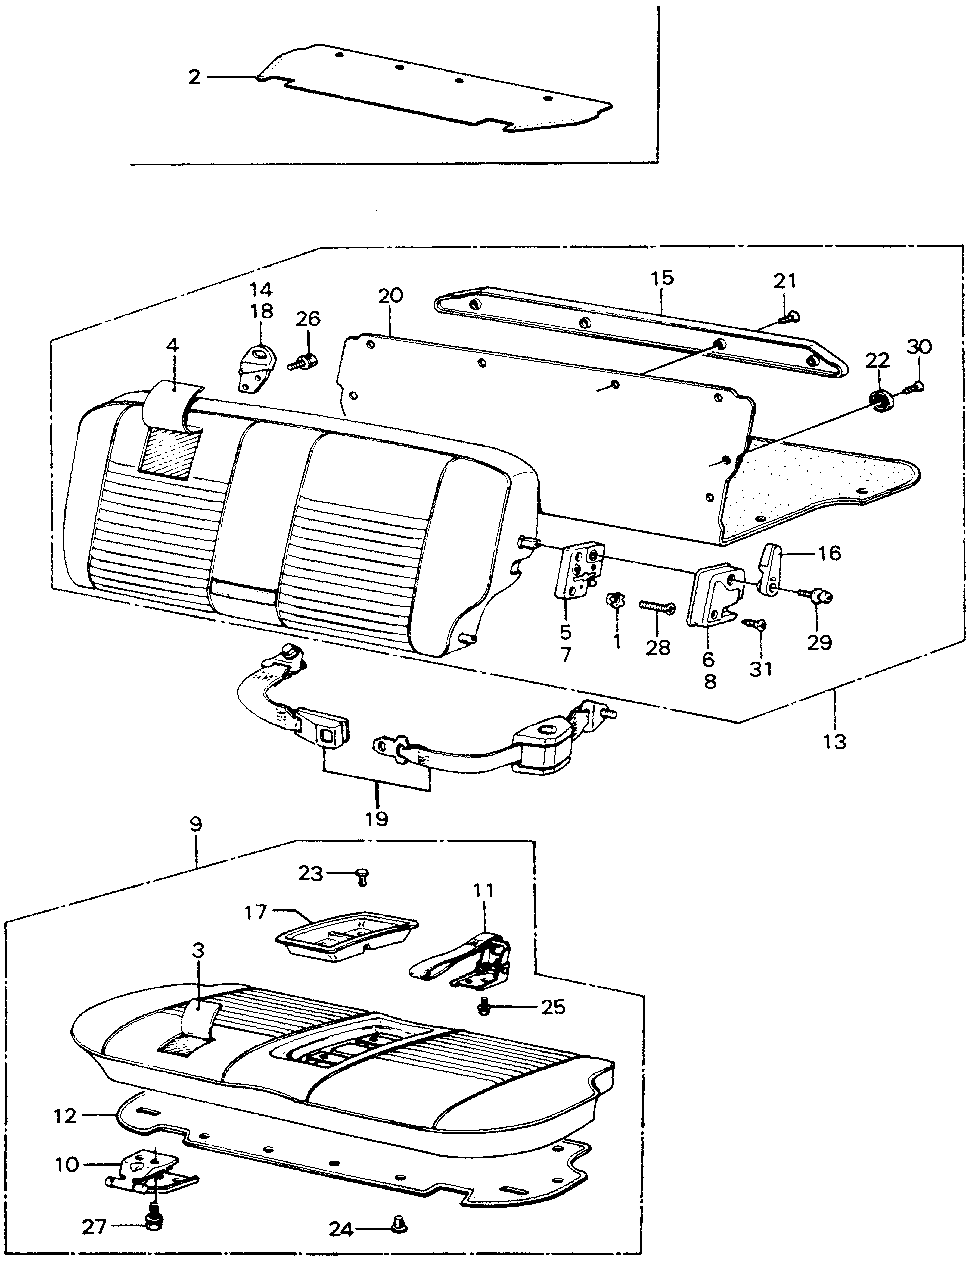 72848-SA3-830 - COVER, MIDDLE FLOOR